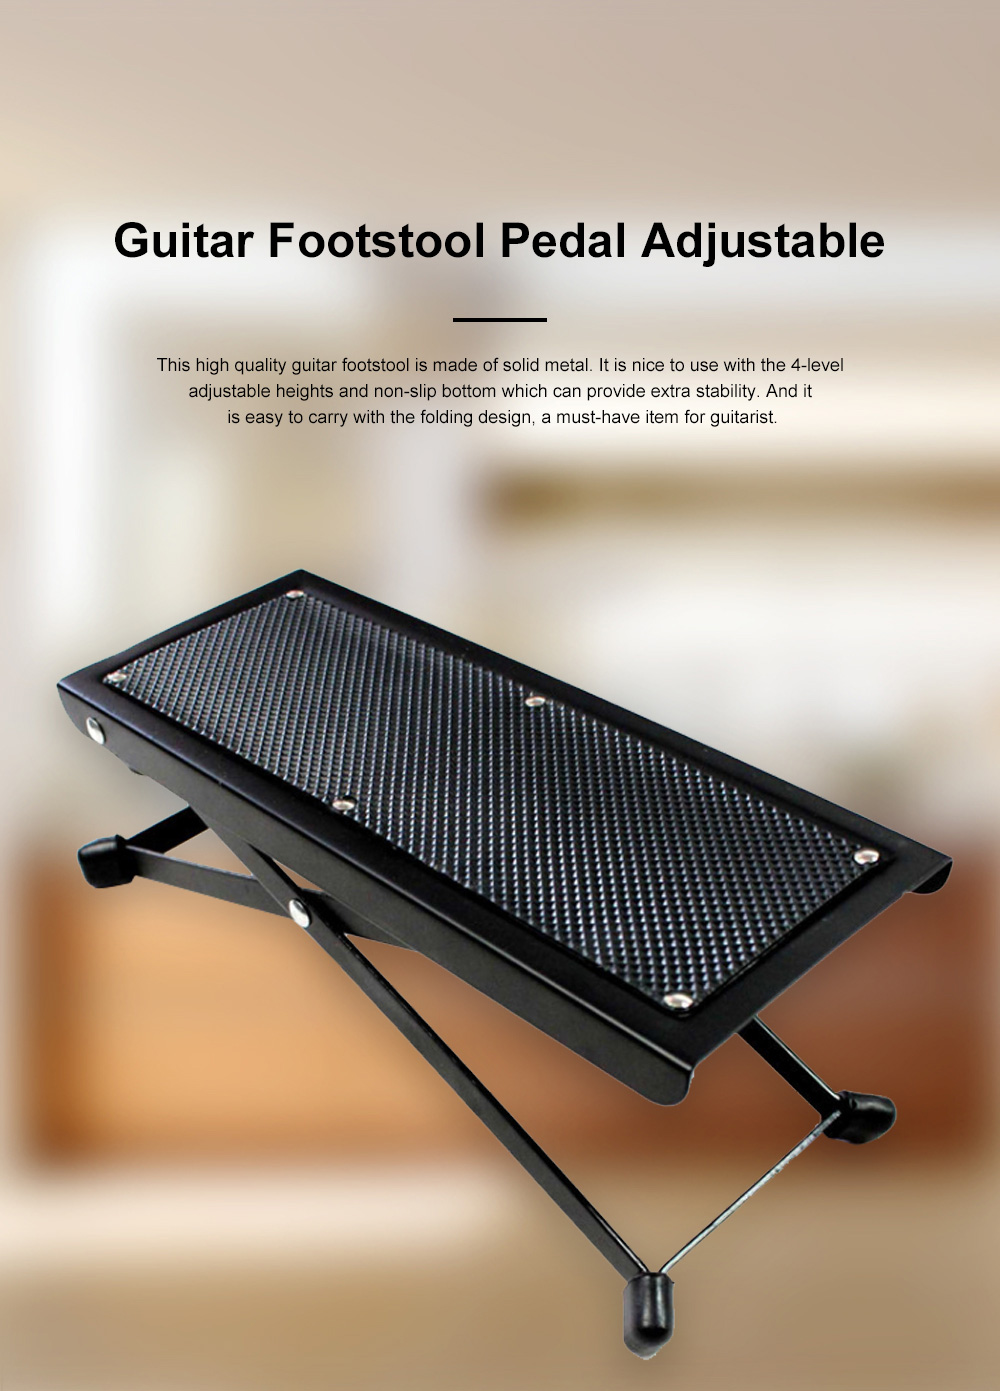 Solid Guitar Footstool Foot Rest 4-Level Adjustable Height Footstool Pedal Heavy Duty Metal Anti-slip Classical Pedal 0